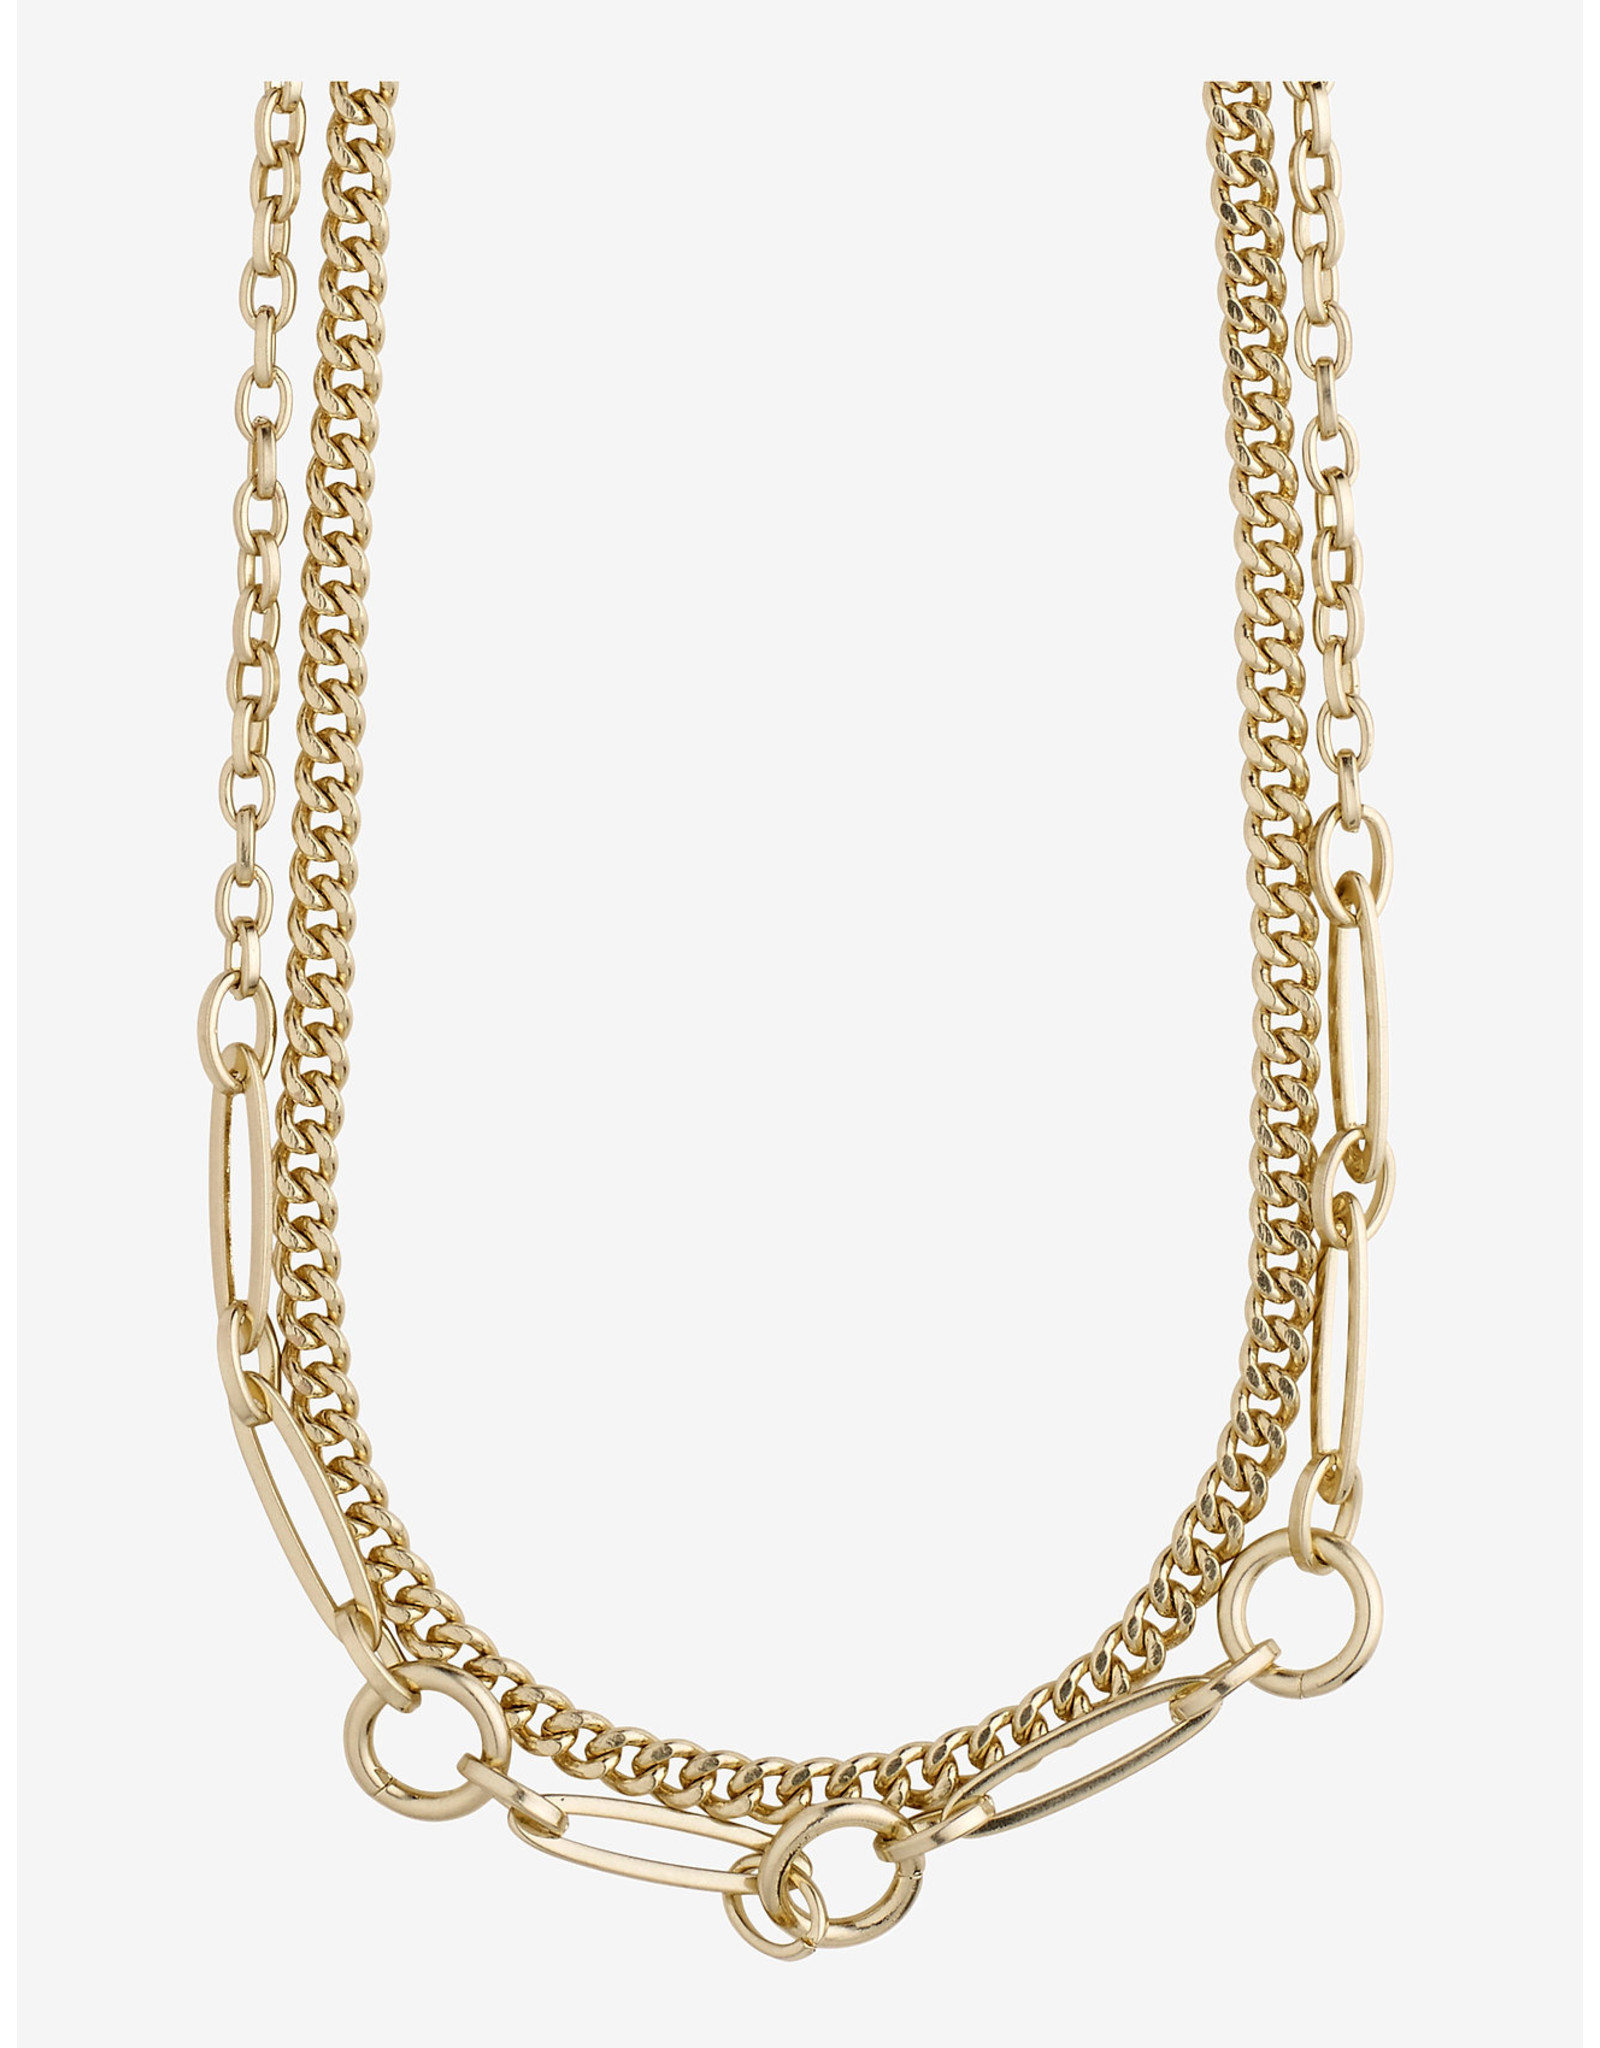 Pilgrim Pilgrim Necklace Sensitivity, 2 Separate Chains, Gold Plated